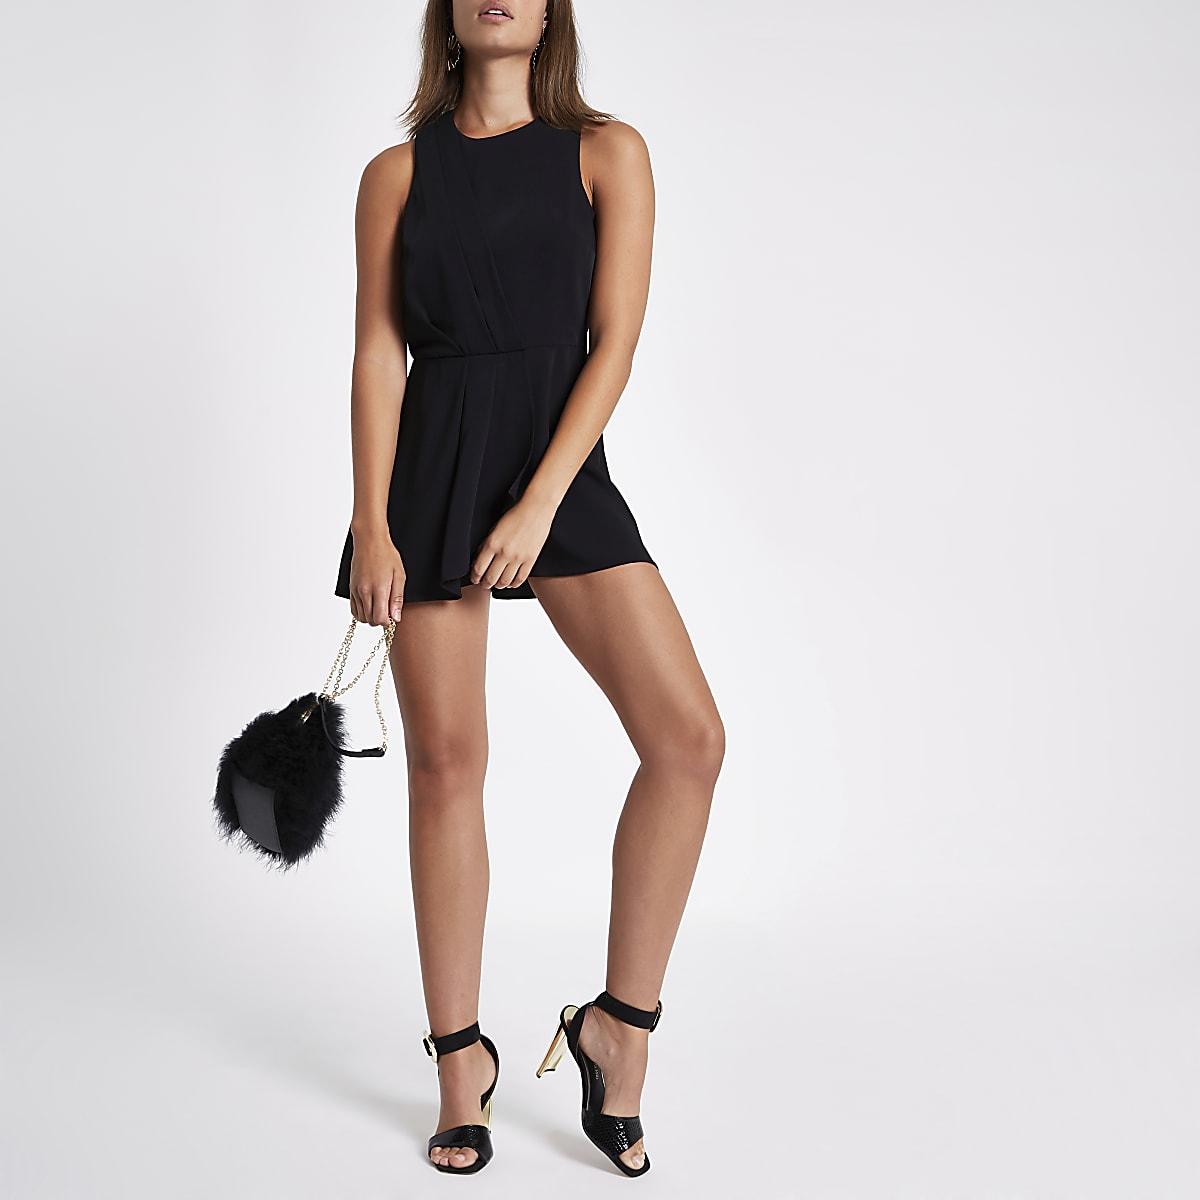 f45b7f0992 Black knot front skort playsuit - Playsuits - Playsuits   Jumpsuits - women